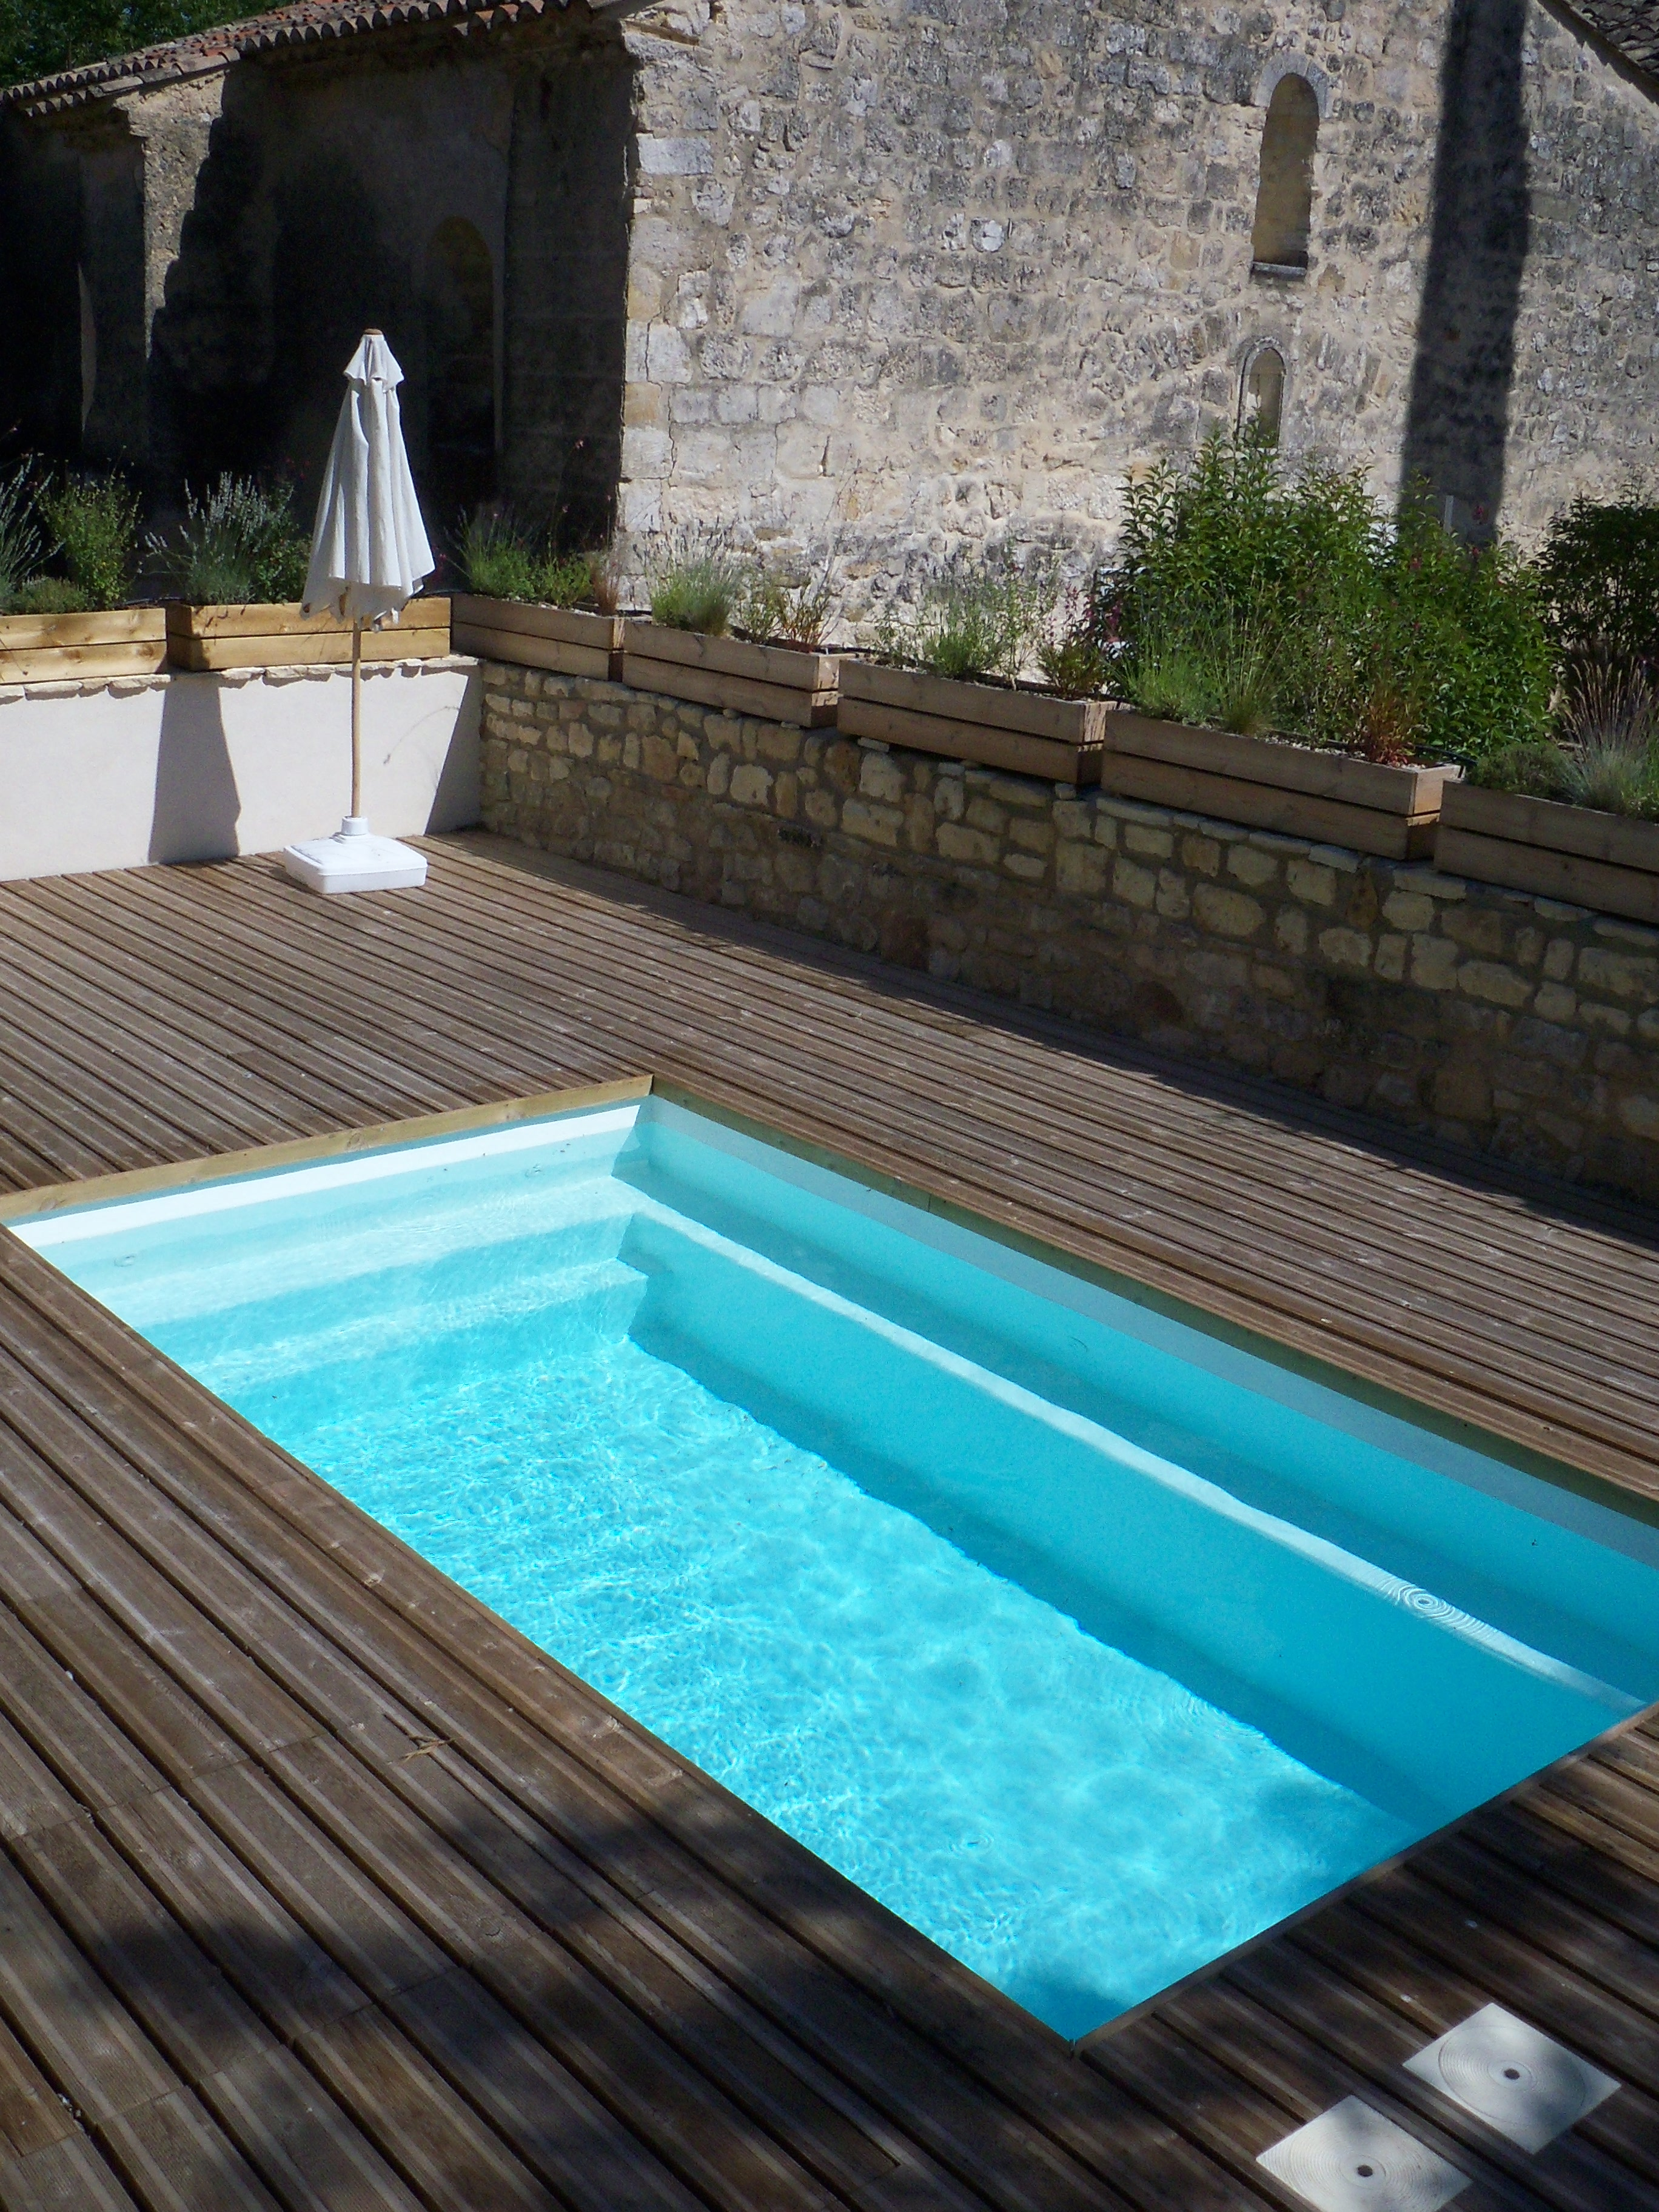 Resin finish on pool